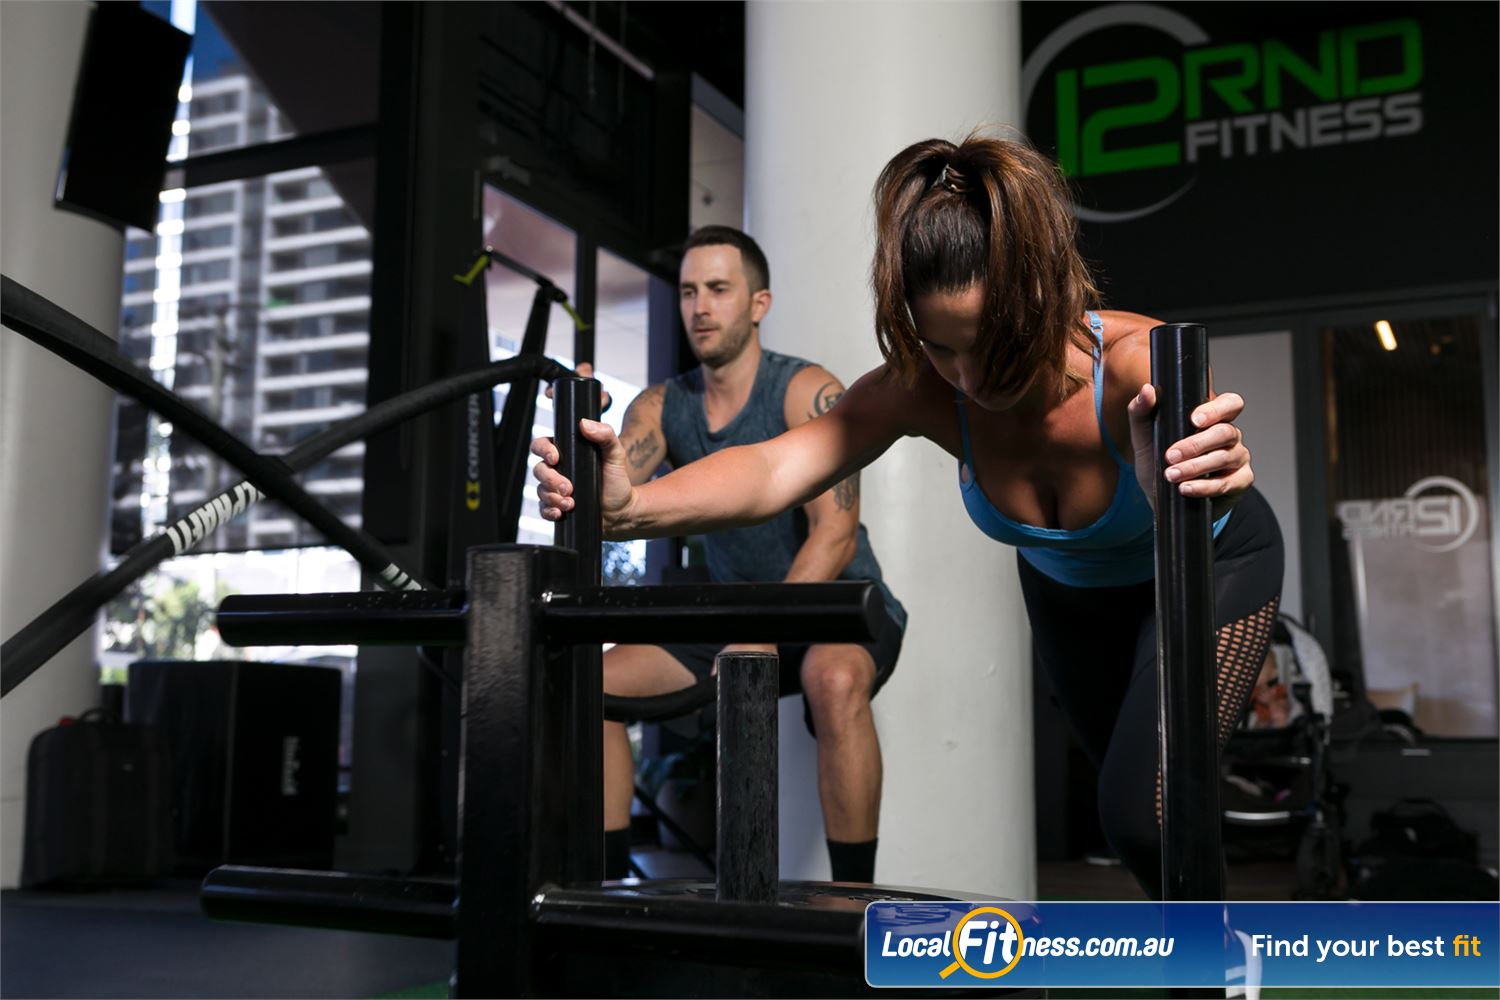 12 Round Fitness Near Canterbury Camberwell HIIT sessions are great for women and men.